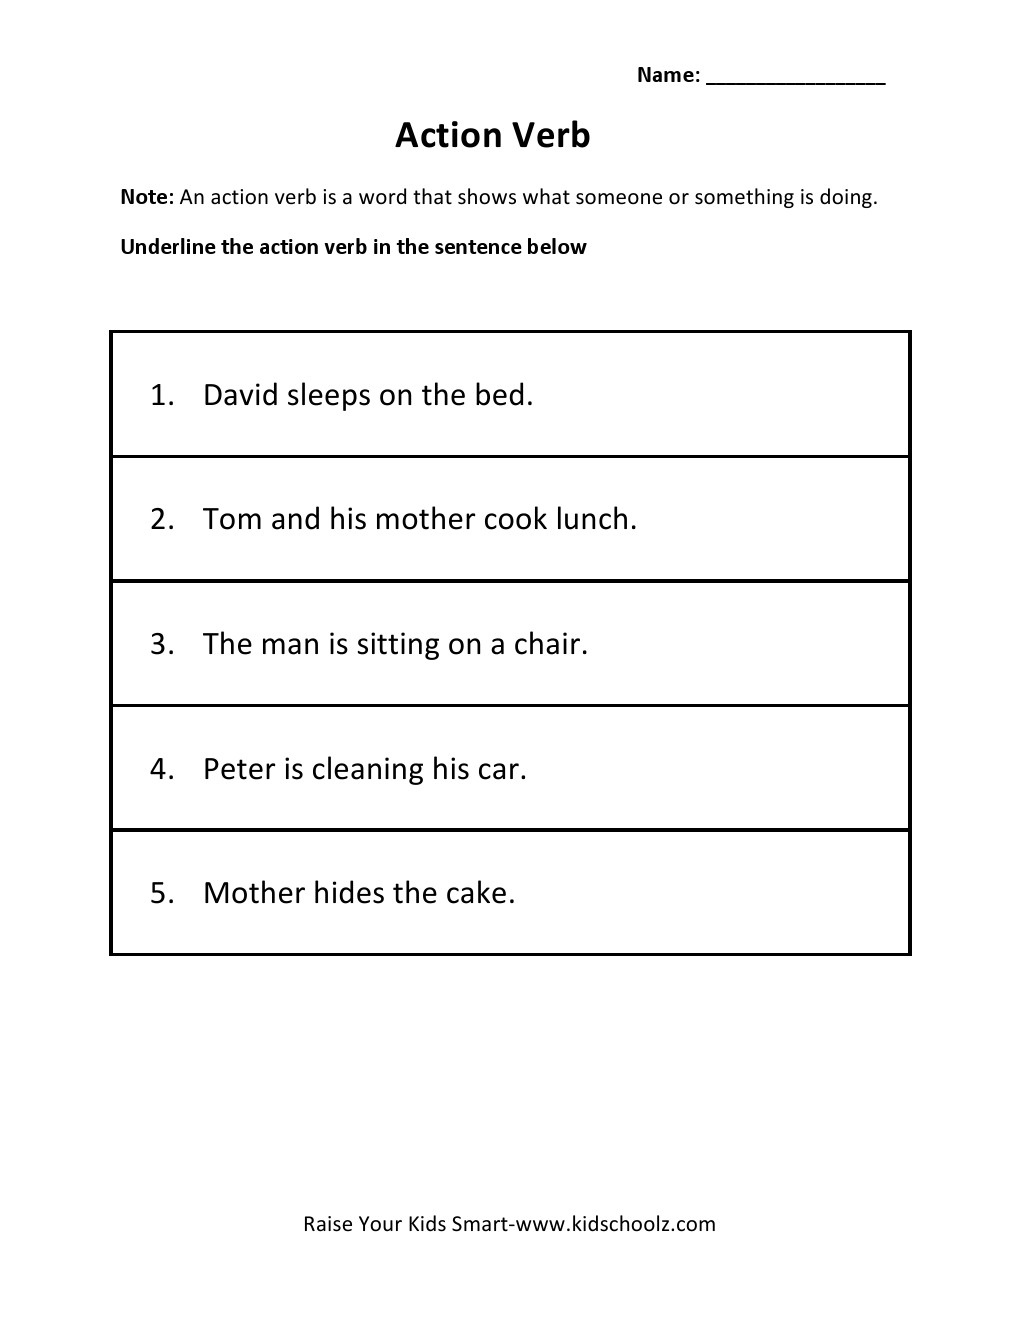 Grade 2 - Action Verb Worksheet 1 -